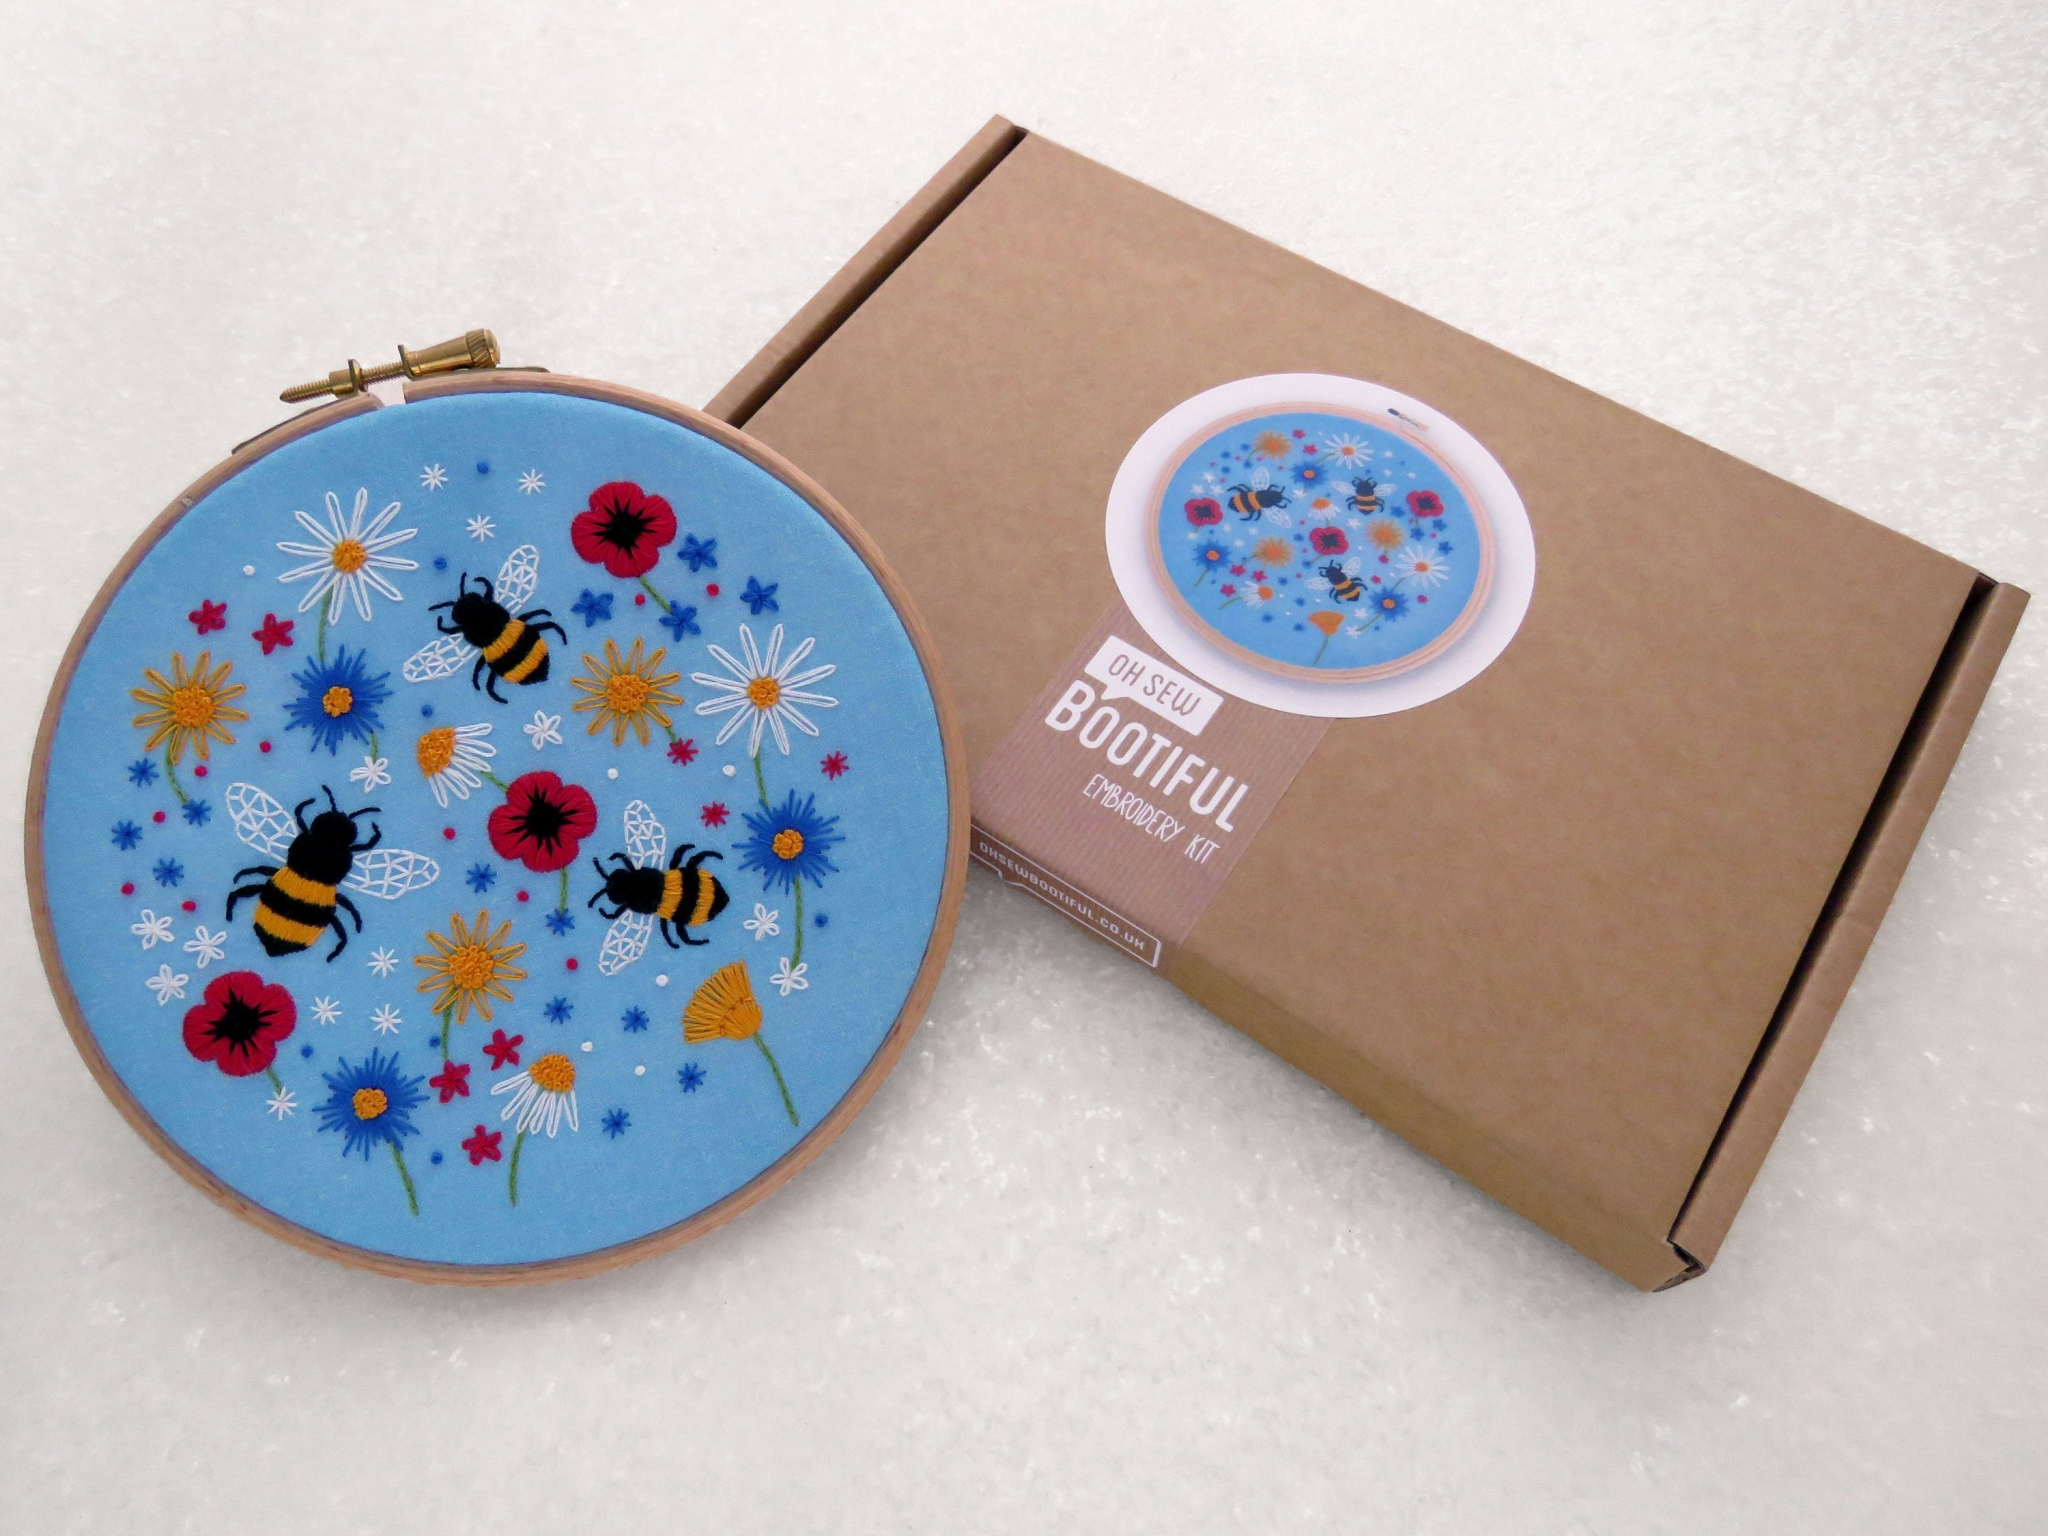 Bees Embroidery Kit